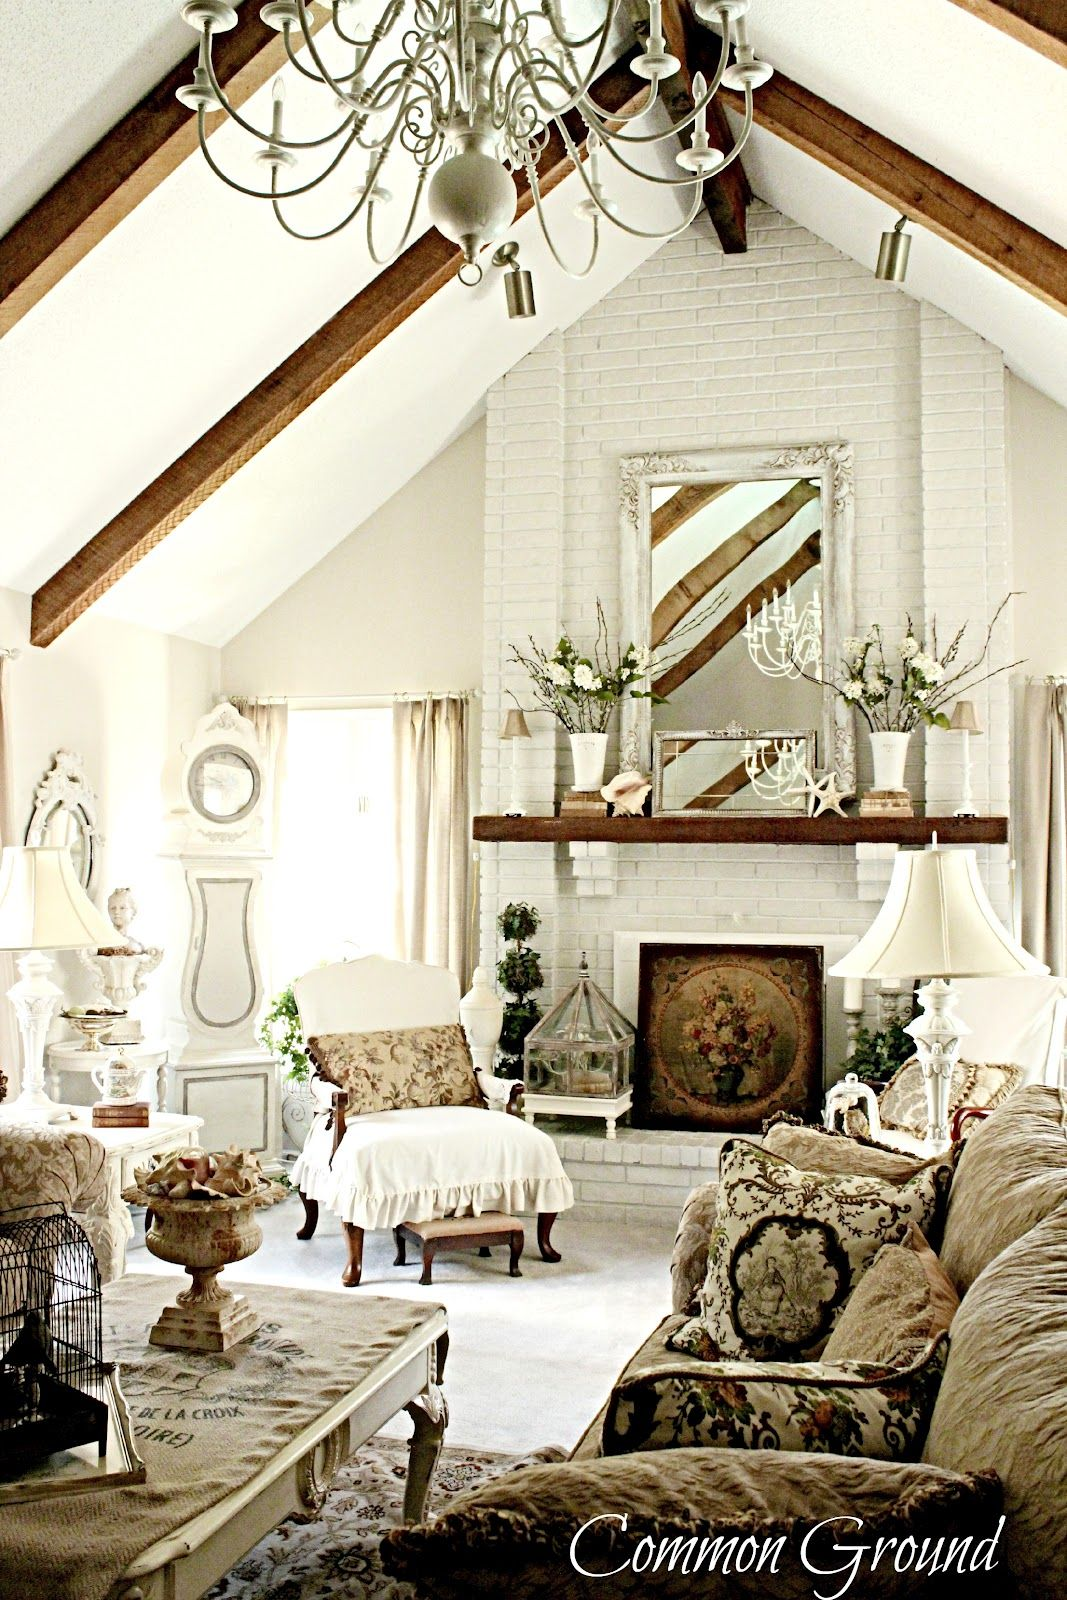 The Neutrals Work So Well With Alll Those Beatiful